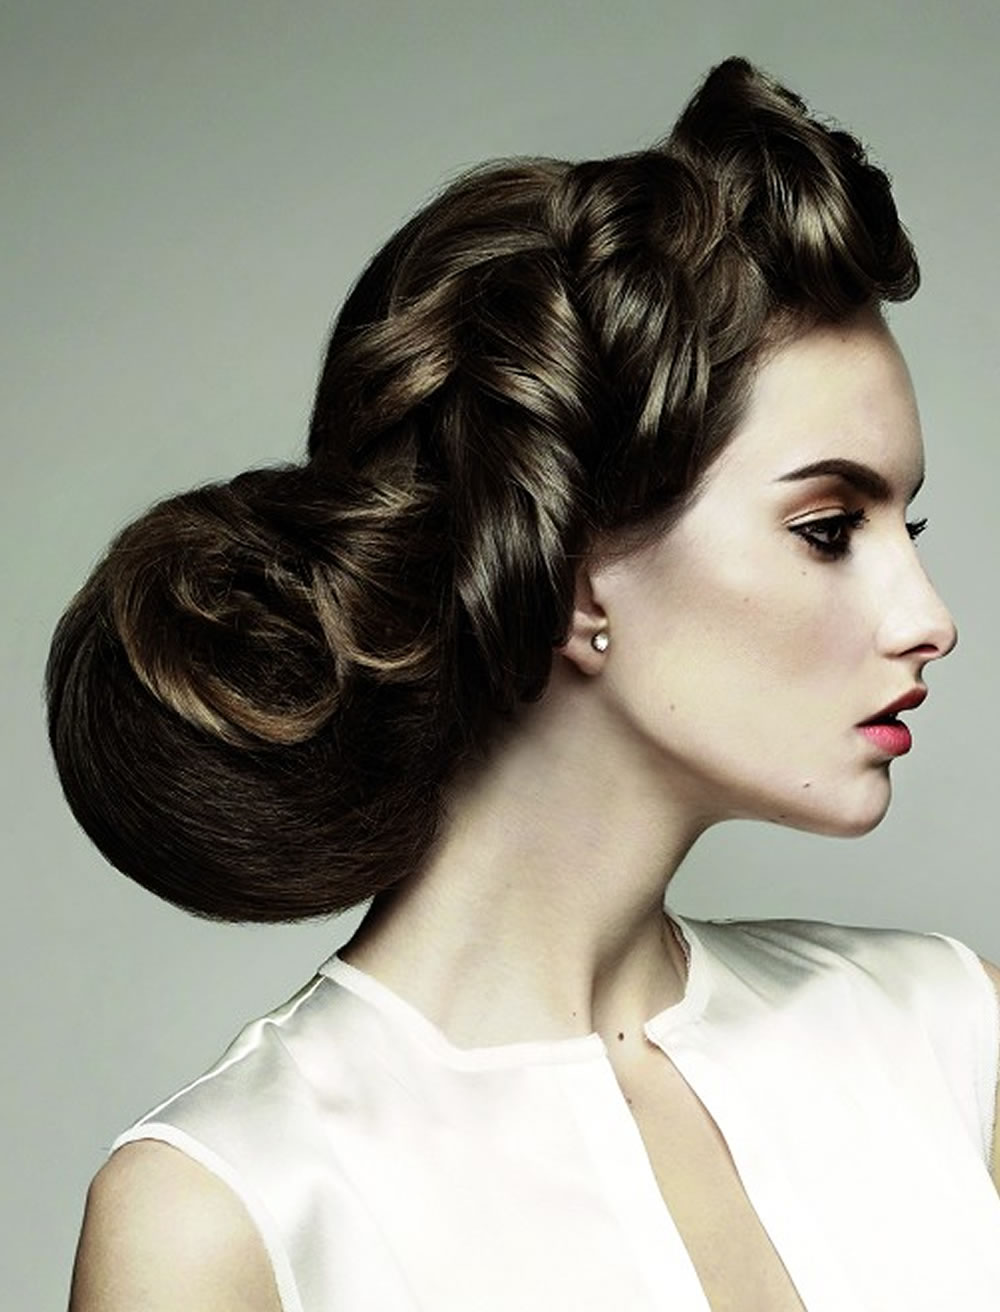 Updo Hairstyles For Round, Square Oval Faces 2018 - 2019 6